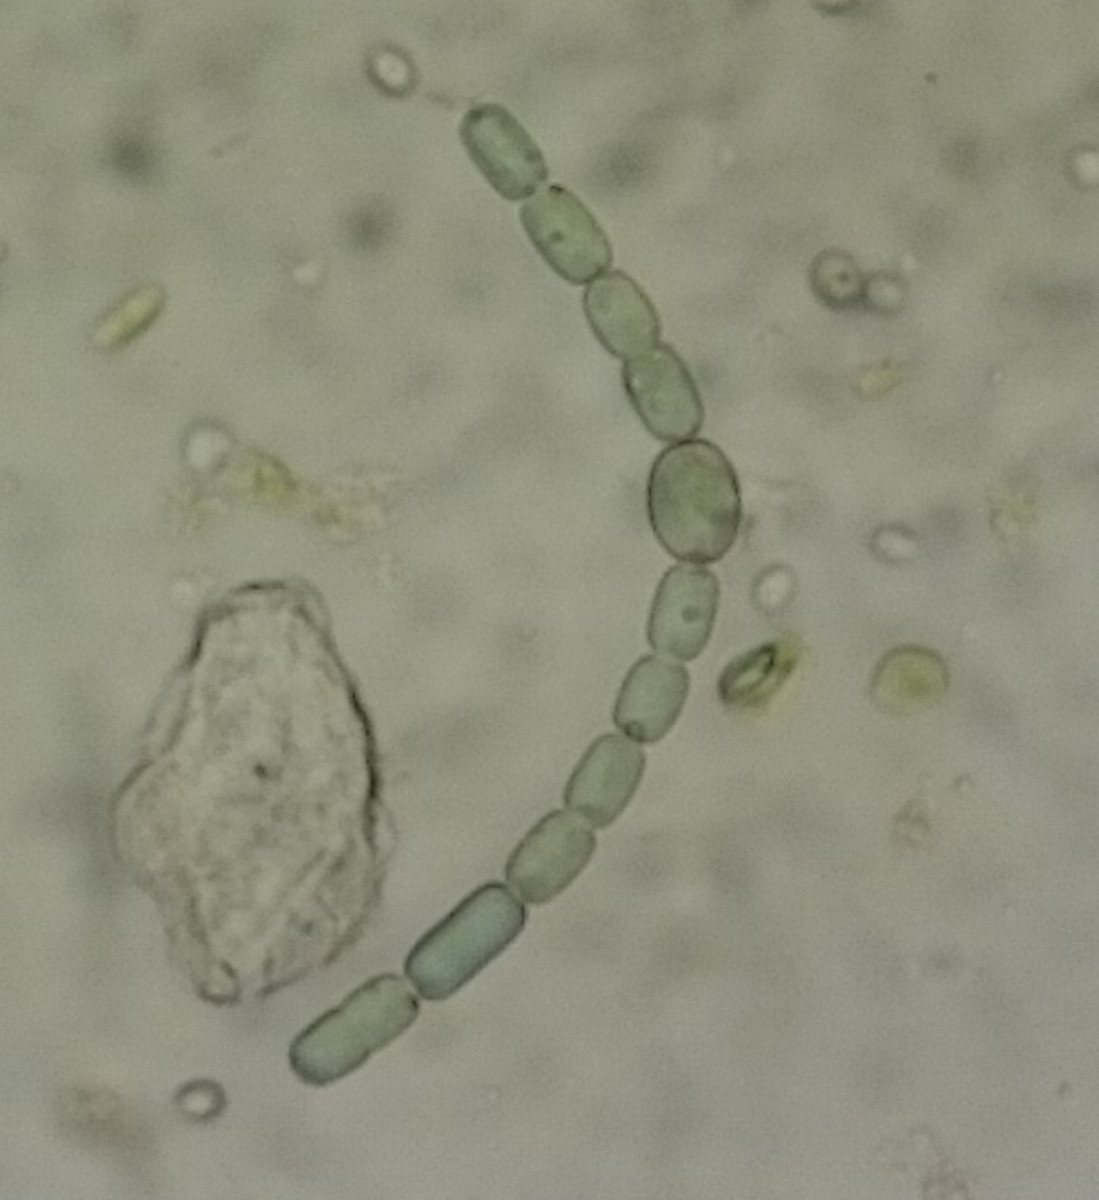 Anabaena azollae, under the microscope.  Photo by atriplex82, courtesy Wikimedia Commons.